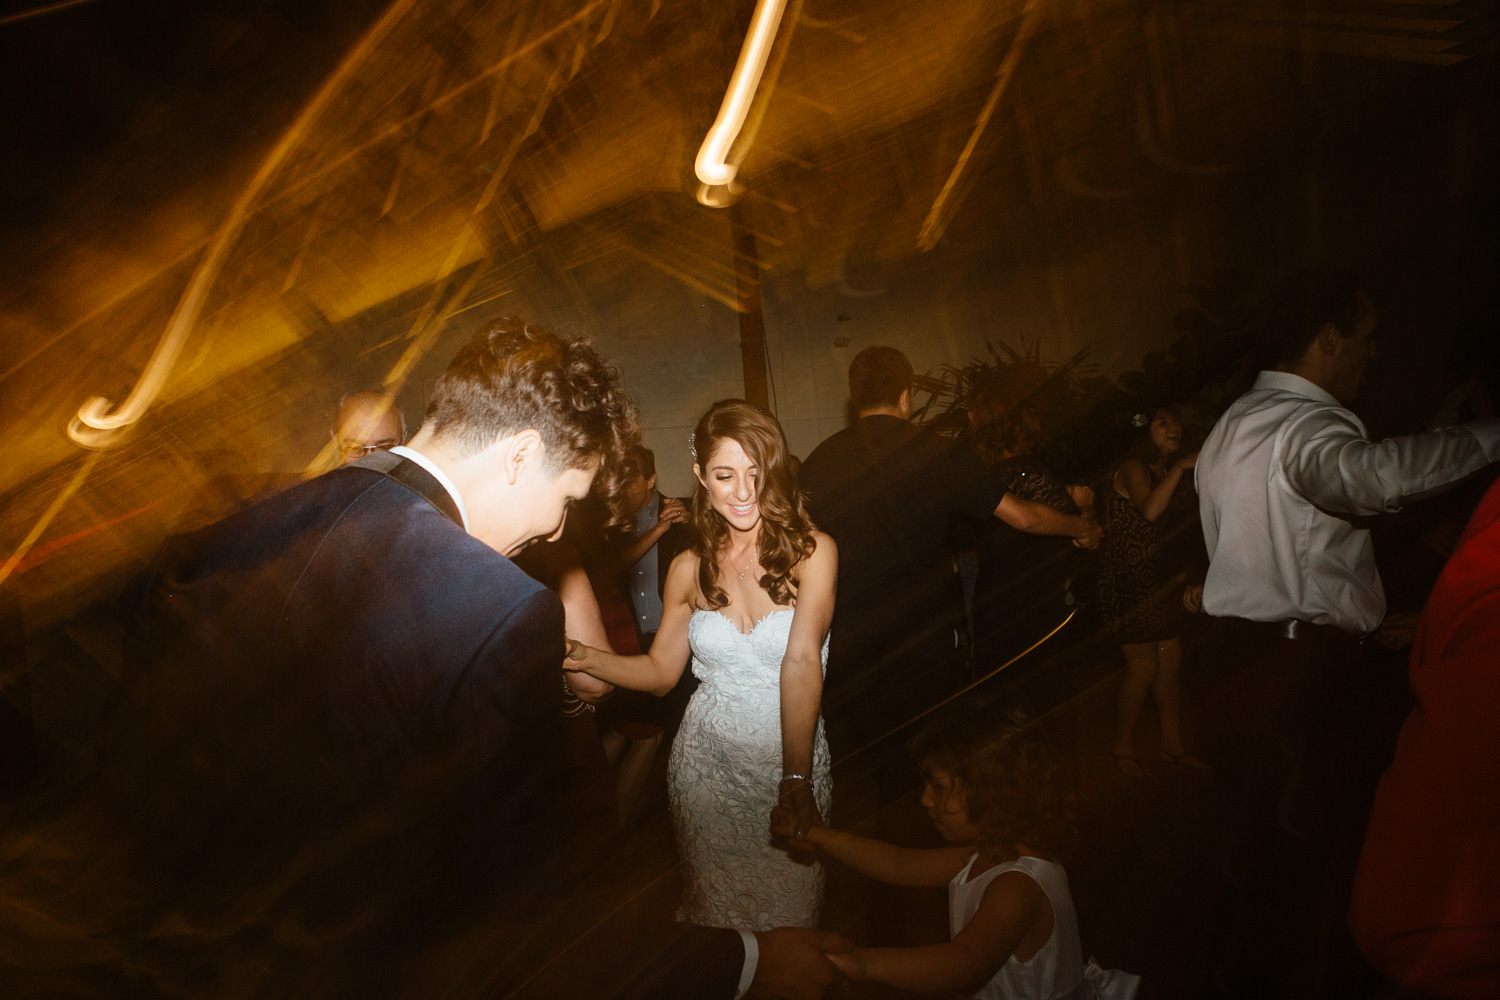 Los Angeles Wedding Photographer, Ace Hotel, Millwick Wedding - The Gathering Season x weareleoandkat 116.JPG